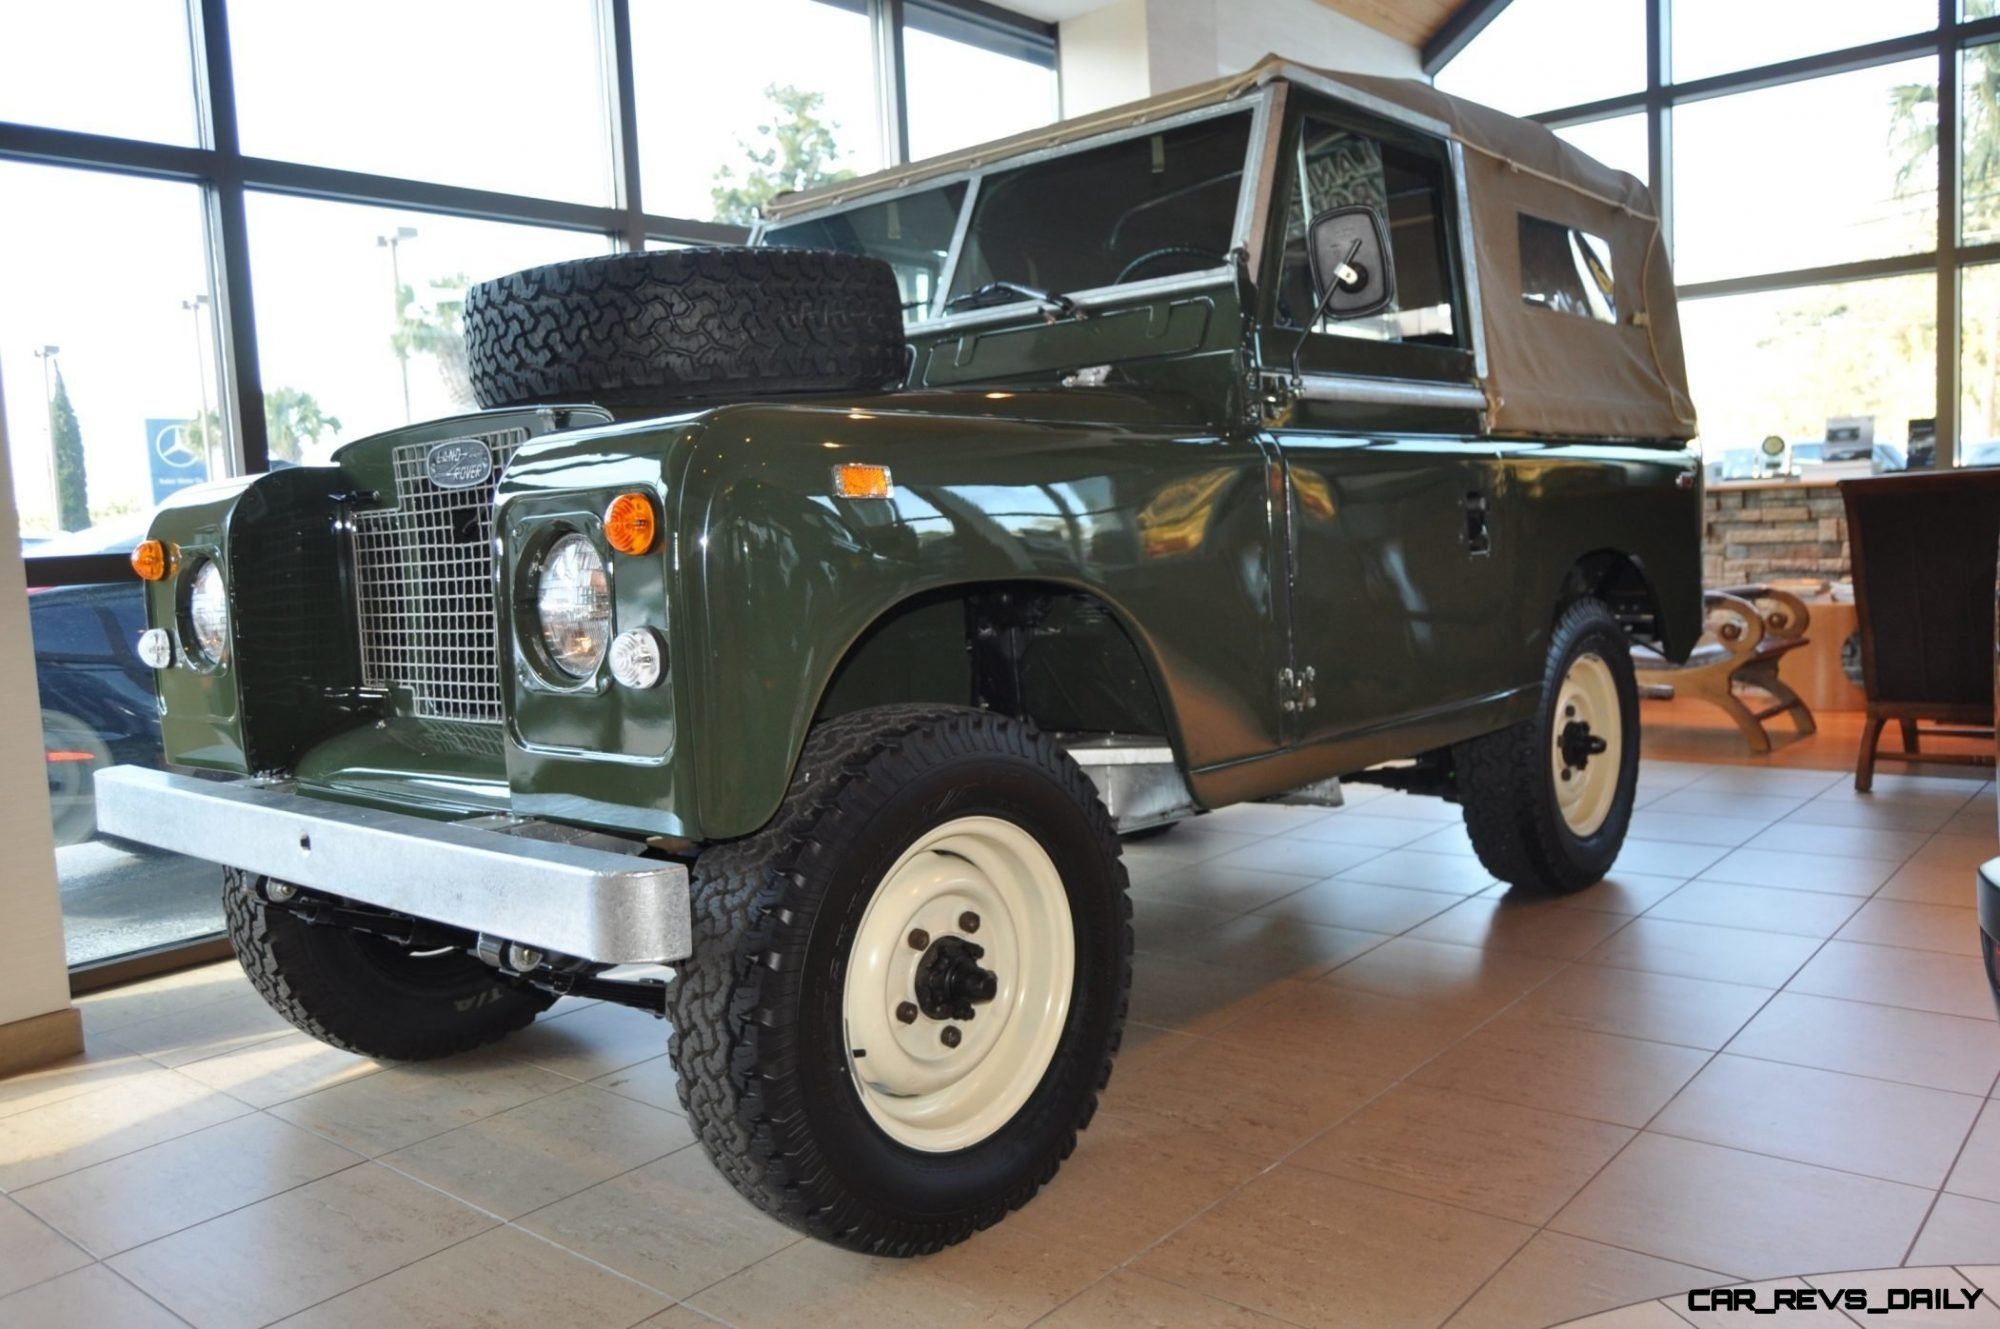 video walk around and photos near mint 1969 land rover. Black Bedroom Furniture Sets. Home Design Ideas